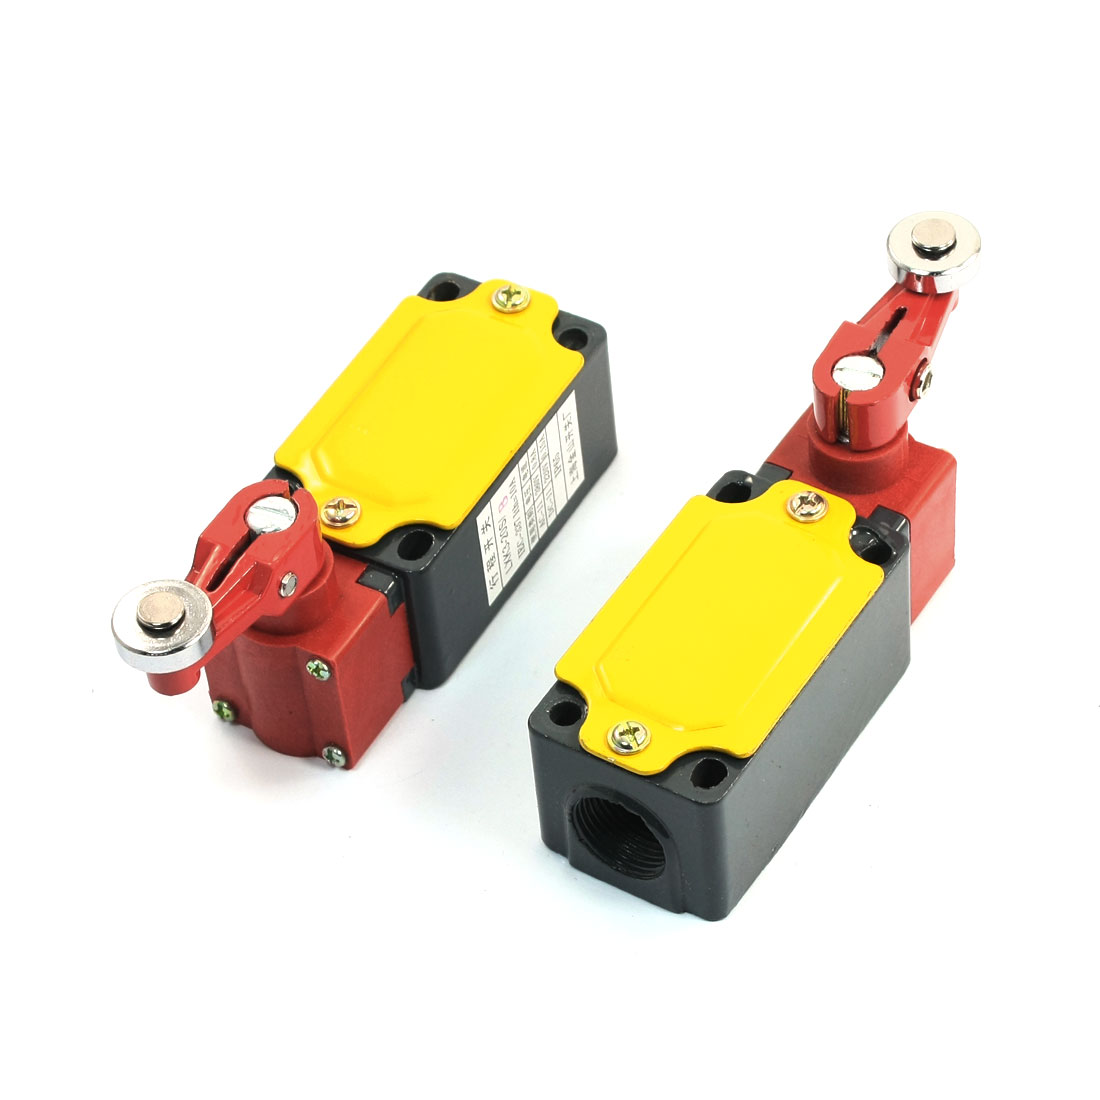 2Pcs-LSK3-20S-B-Momentary-Enclosed-Limit-Switch-w-Adjustable-Roller-Lever-Arm